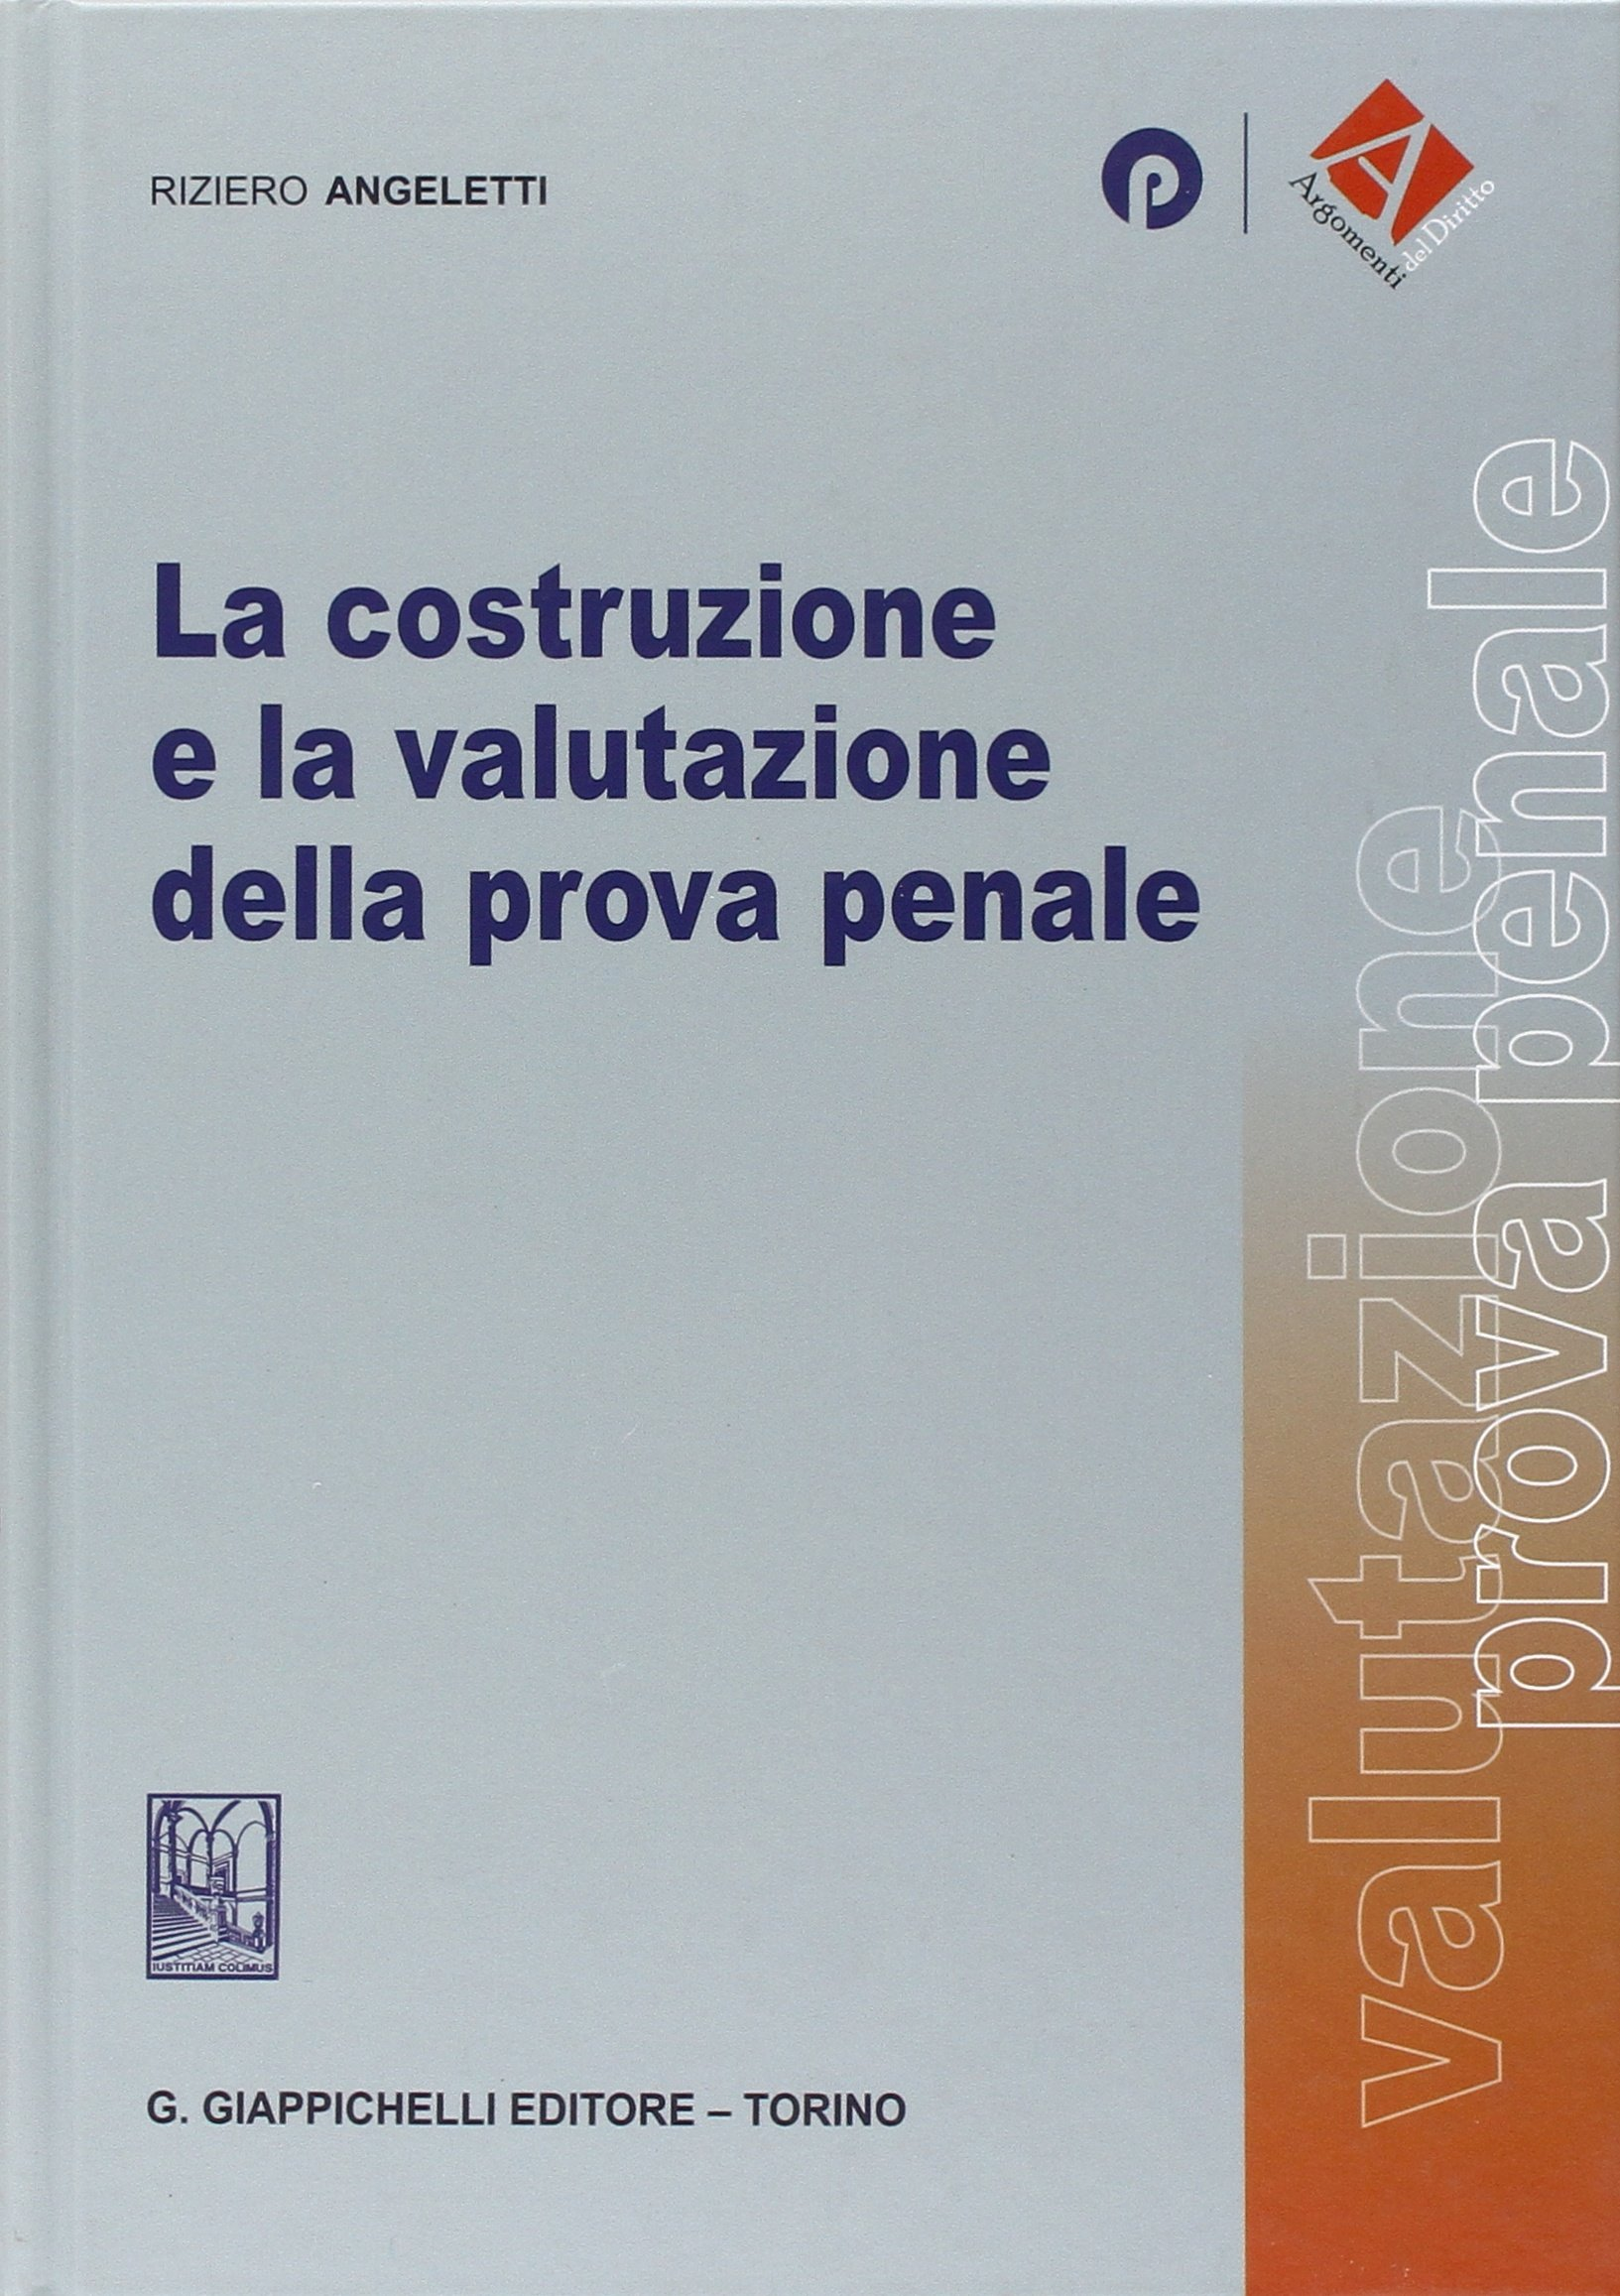 The Italian Constitutional Court on assisted suicide